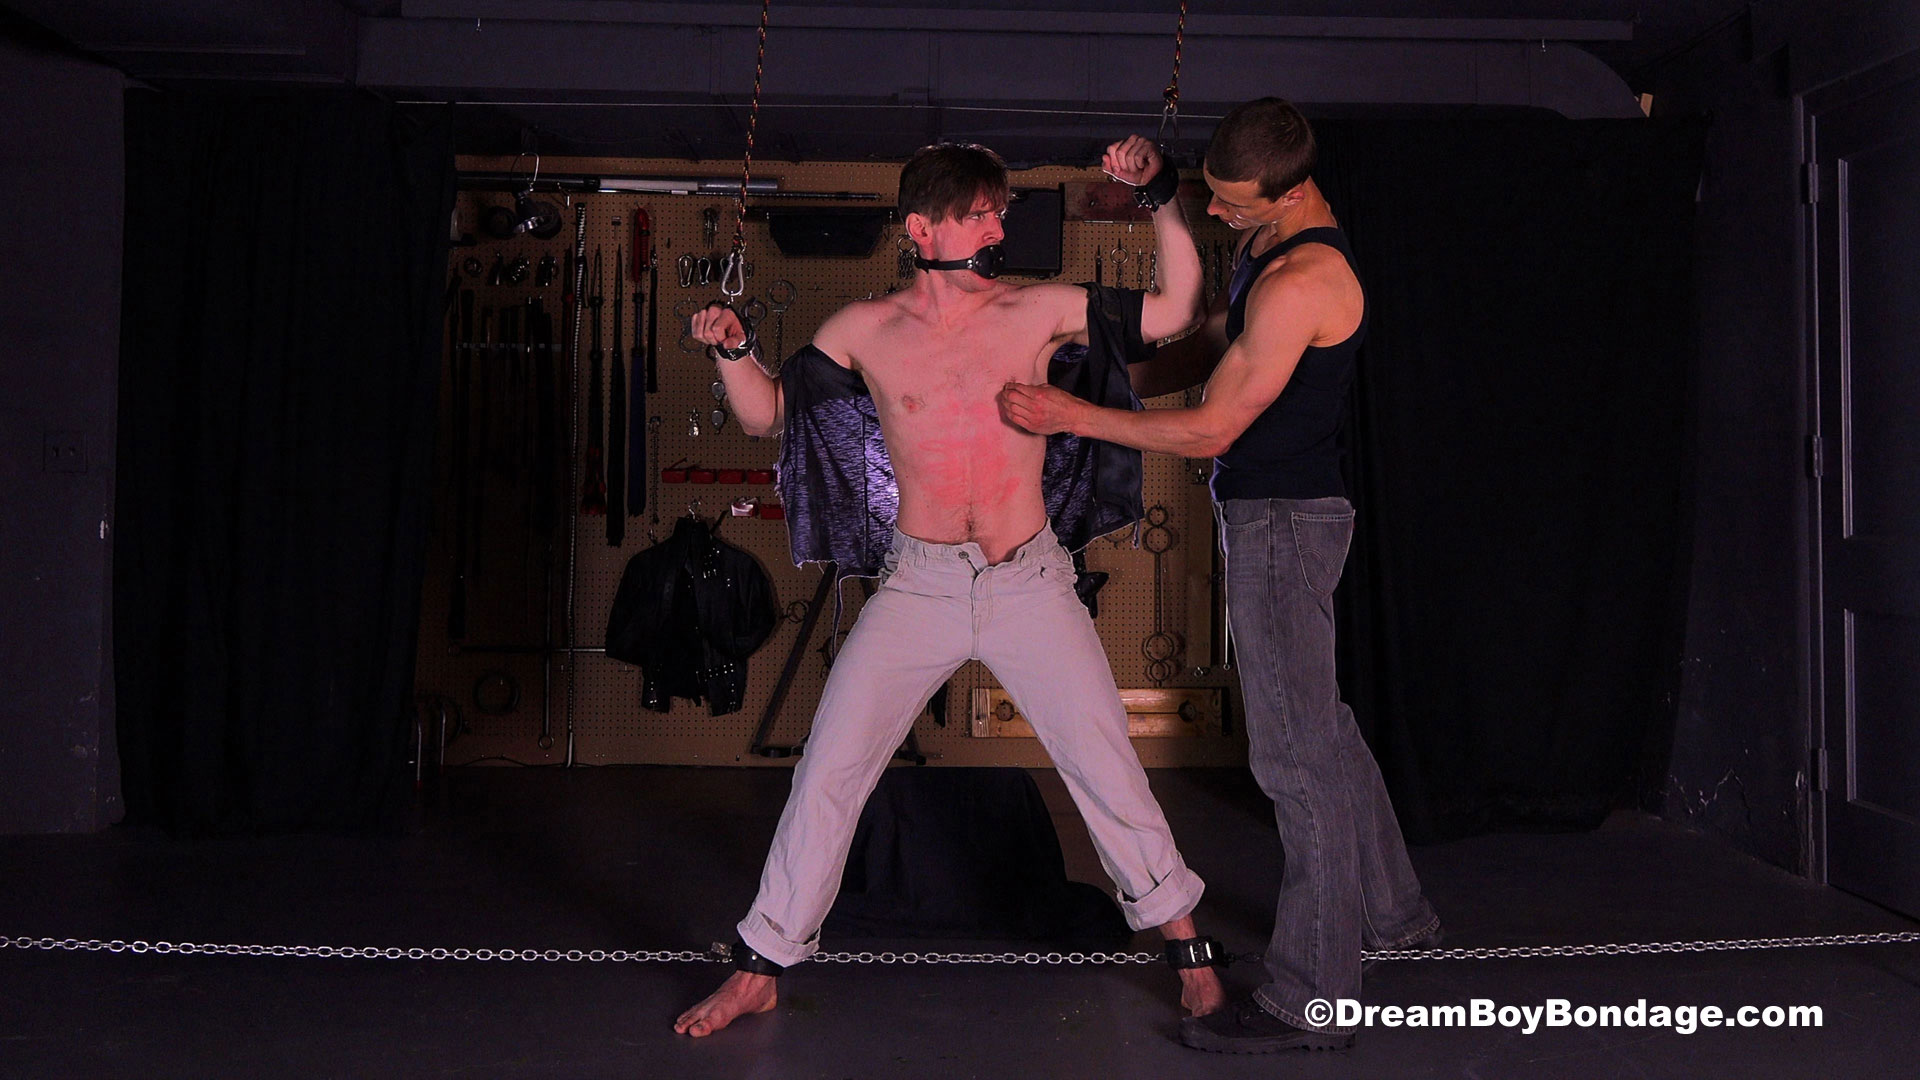 Pictures from Dream Boy Bondage: Dirk gets tied up by Jared